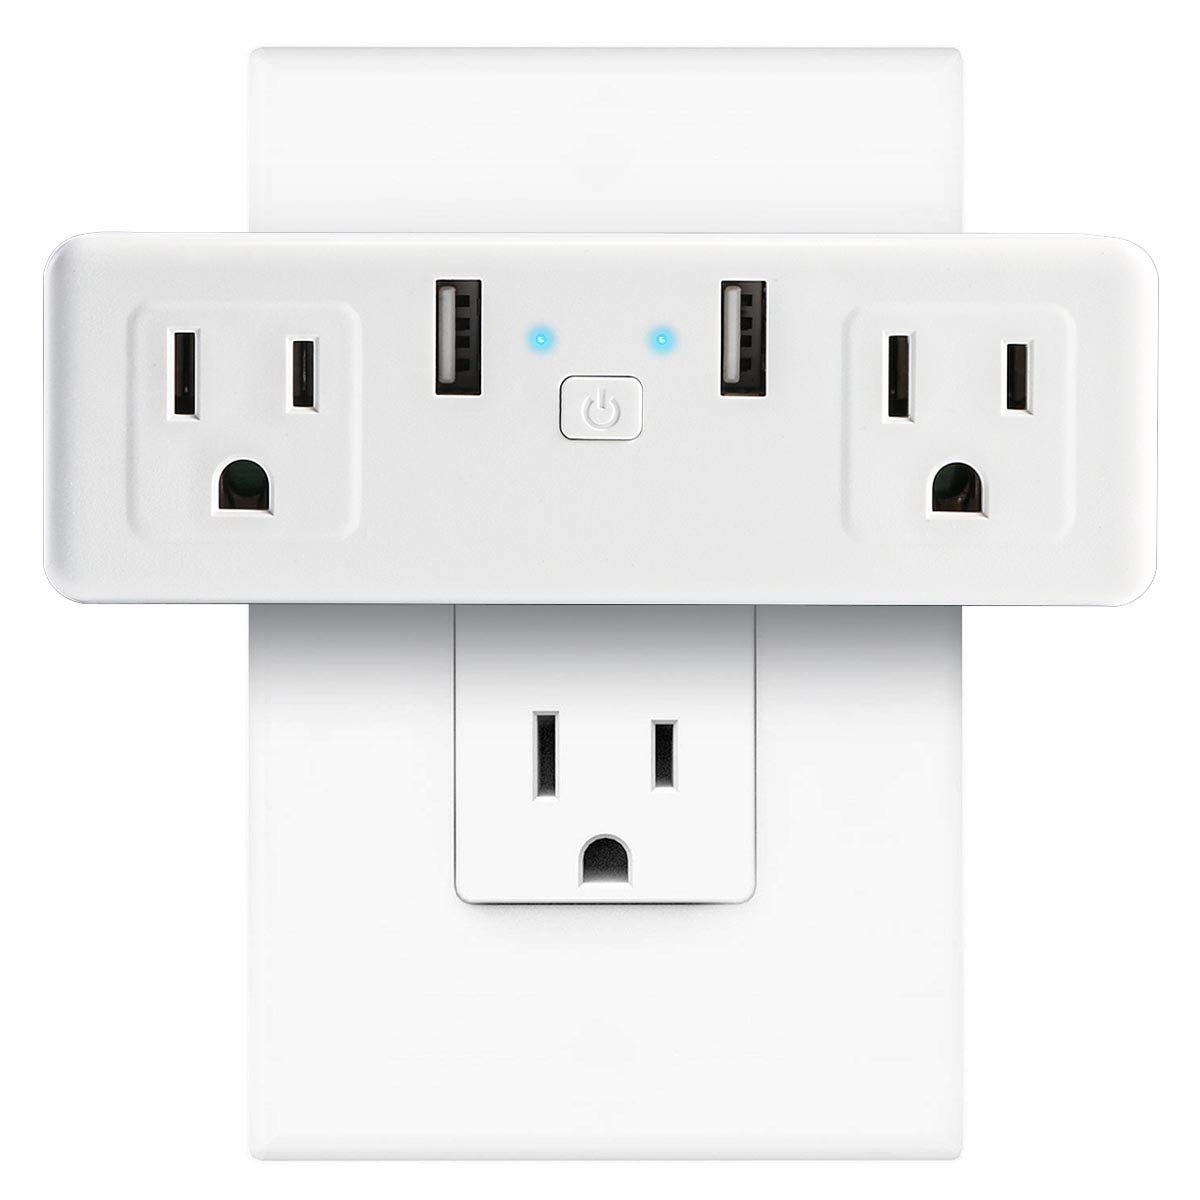 Smart WIFI Plug Outlet, Leyeet 2 in 1 Space-Saving 15A Wi-Fi Mini Smart Socket Switch Voice and App Controlled, 2 USB port Compatible with Alexa, Google Assistant and IFTTT No Hub Required